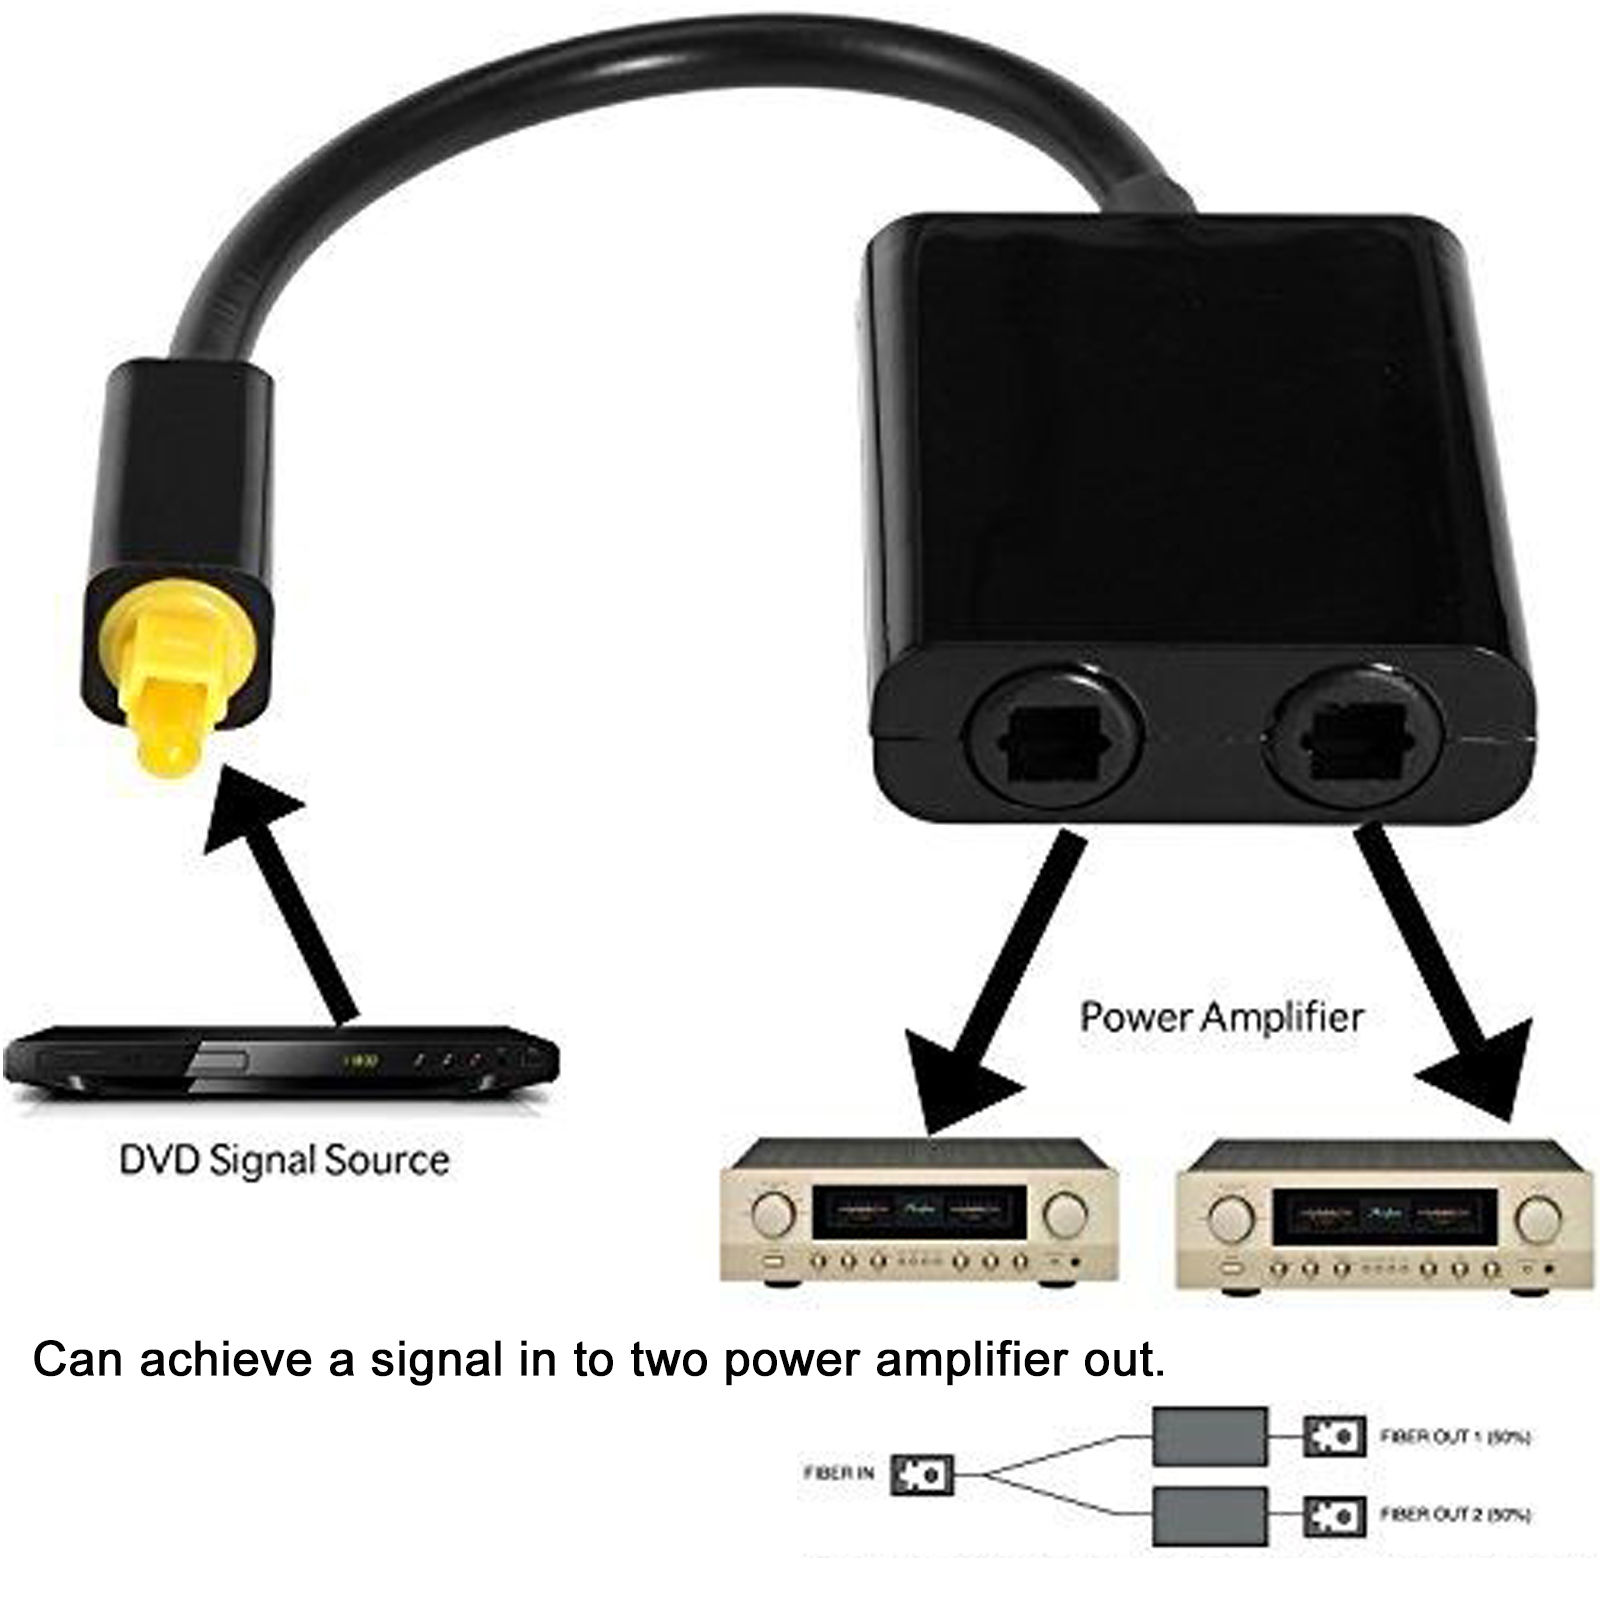 Dual Port Toslink Digital Optical Fiber Splitter Audio Adapter Cable 1 In 2 Out